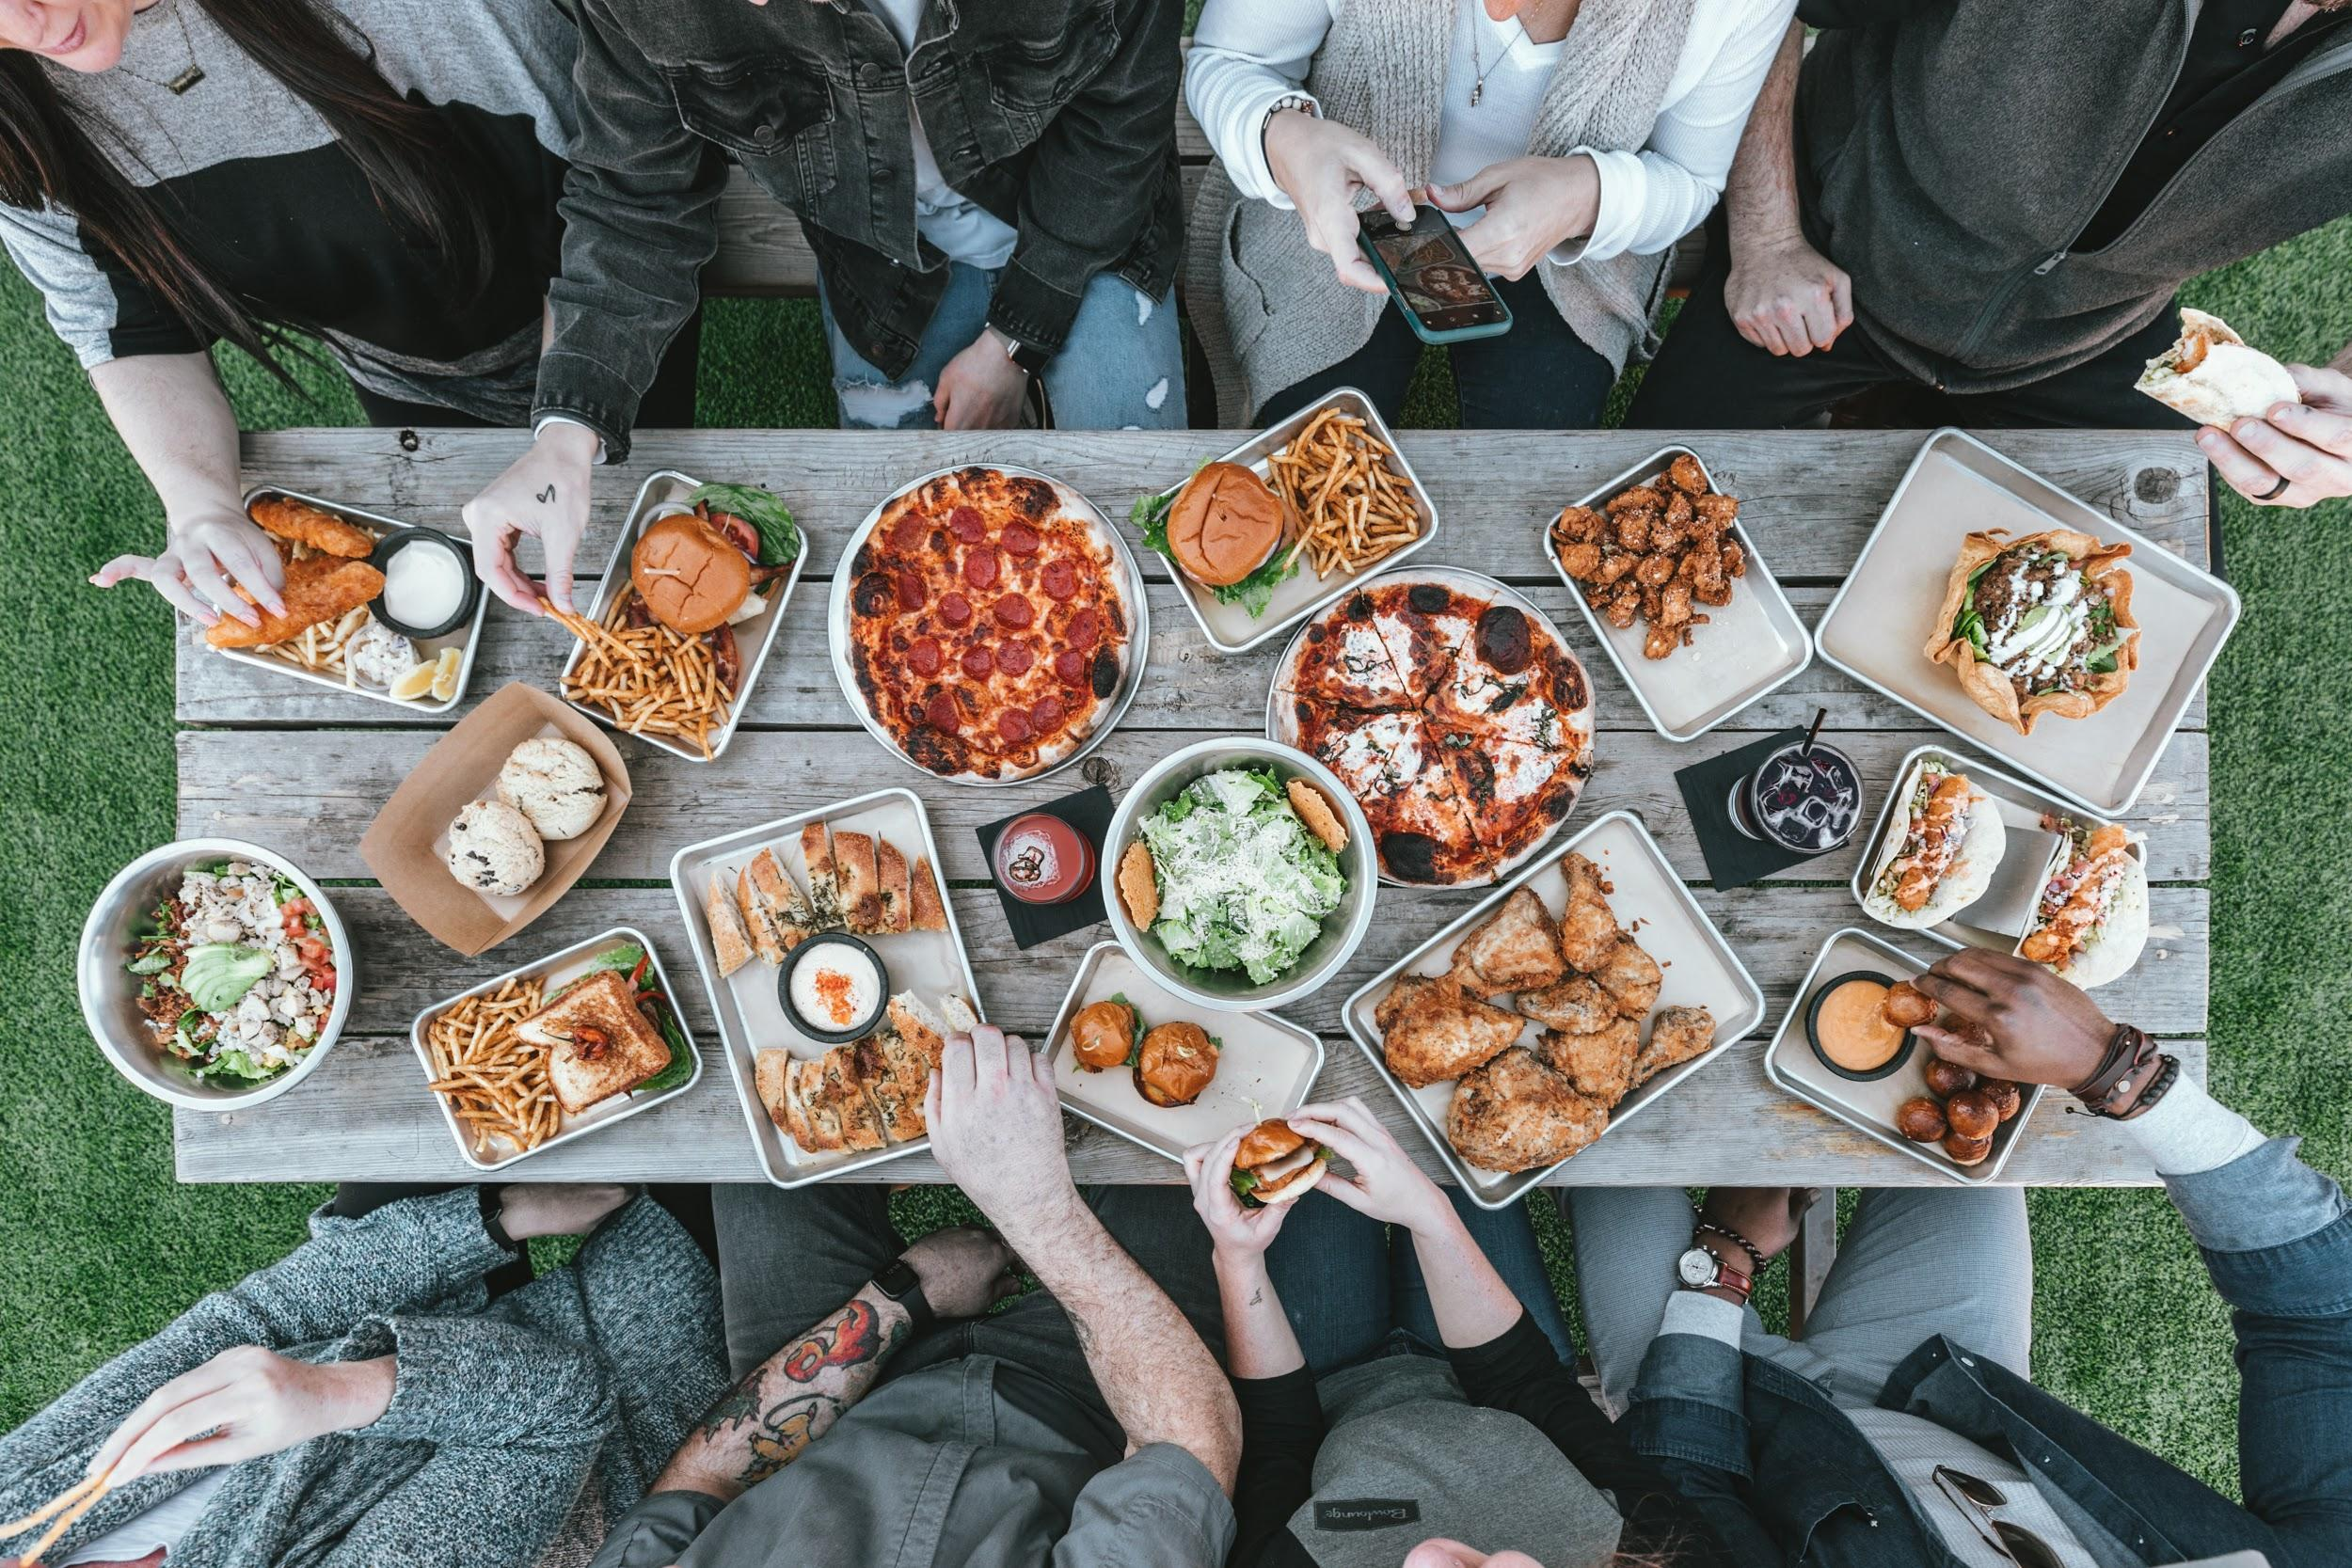 The photo shows a wooden picnic table surrounded by people (just arms and legs showing). On the table are trays holding a variety of foods, including pizza, salads, sandwiches, tacos, and chicken.